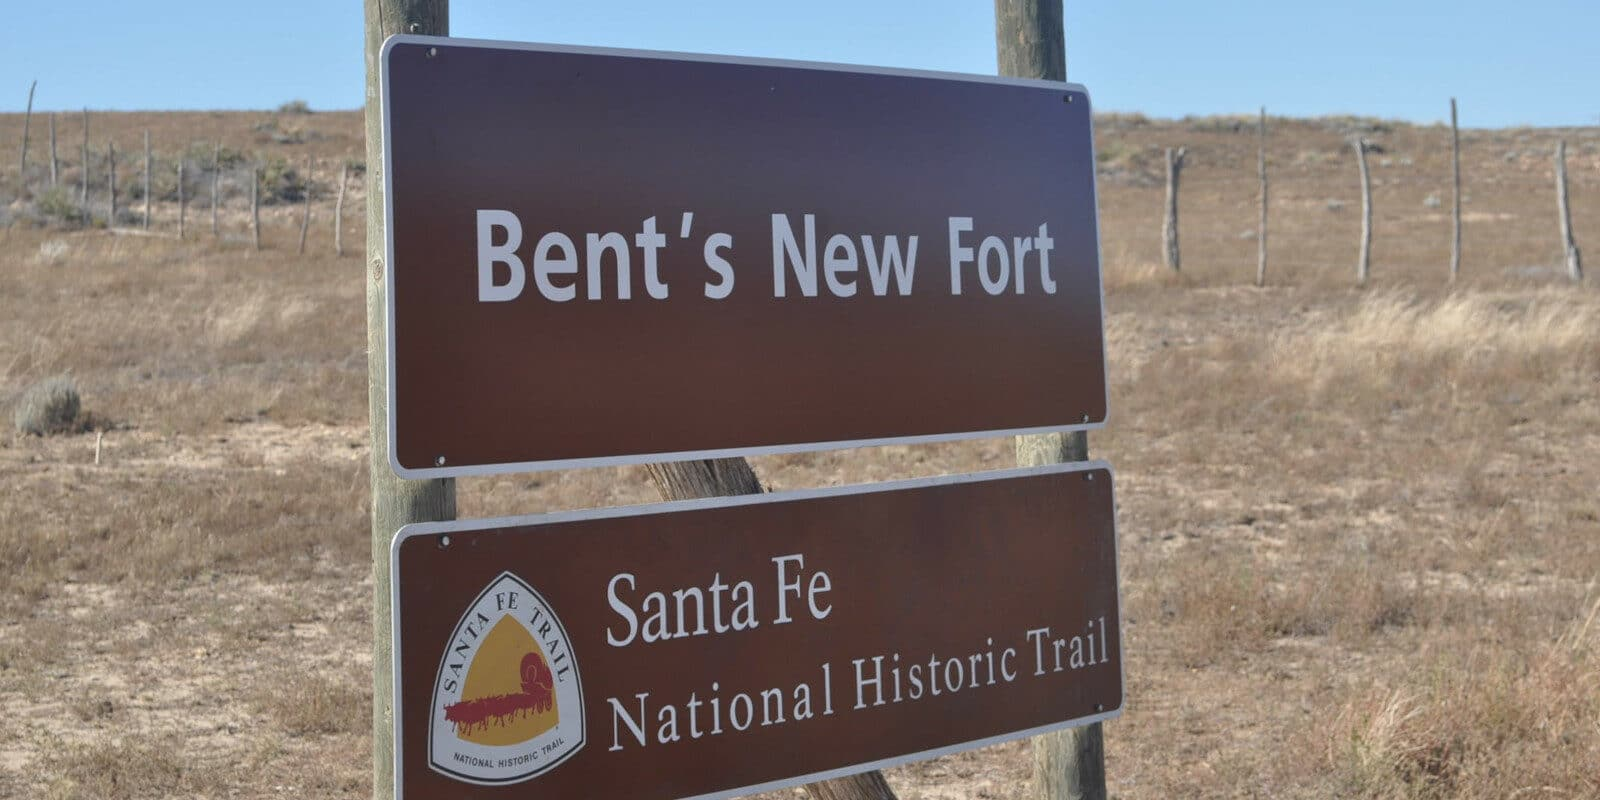 Image of the sign for Bent's New Fort in Lamar Colorado